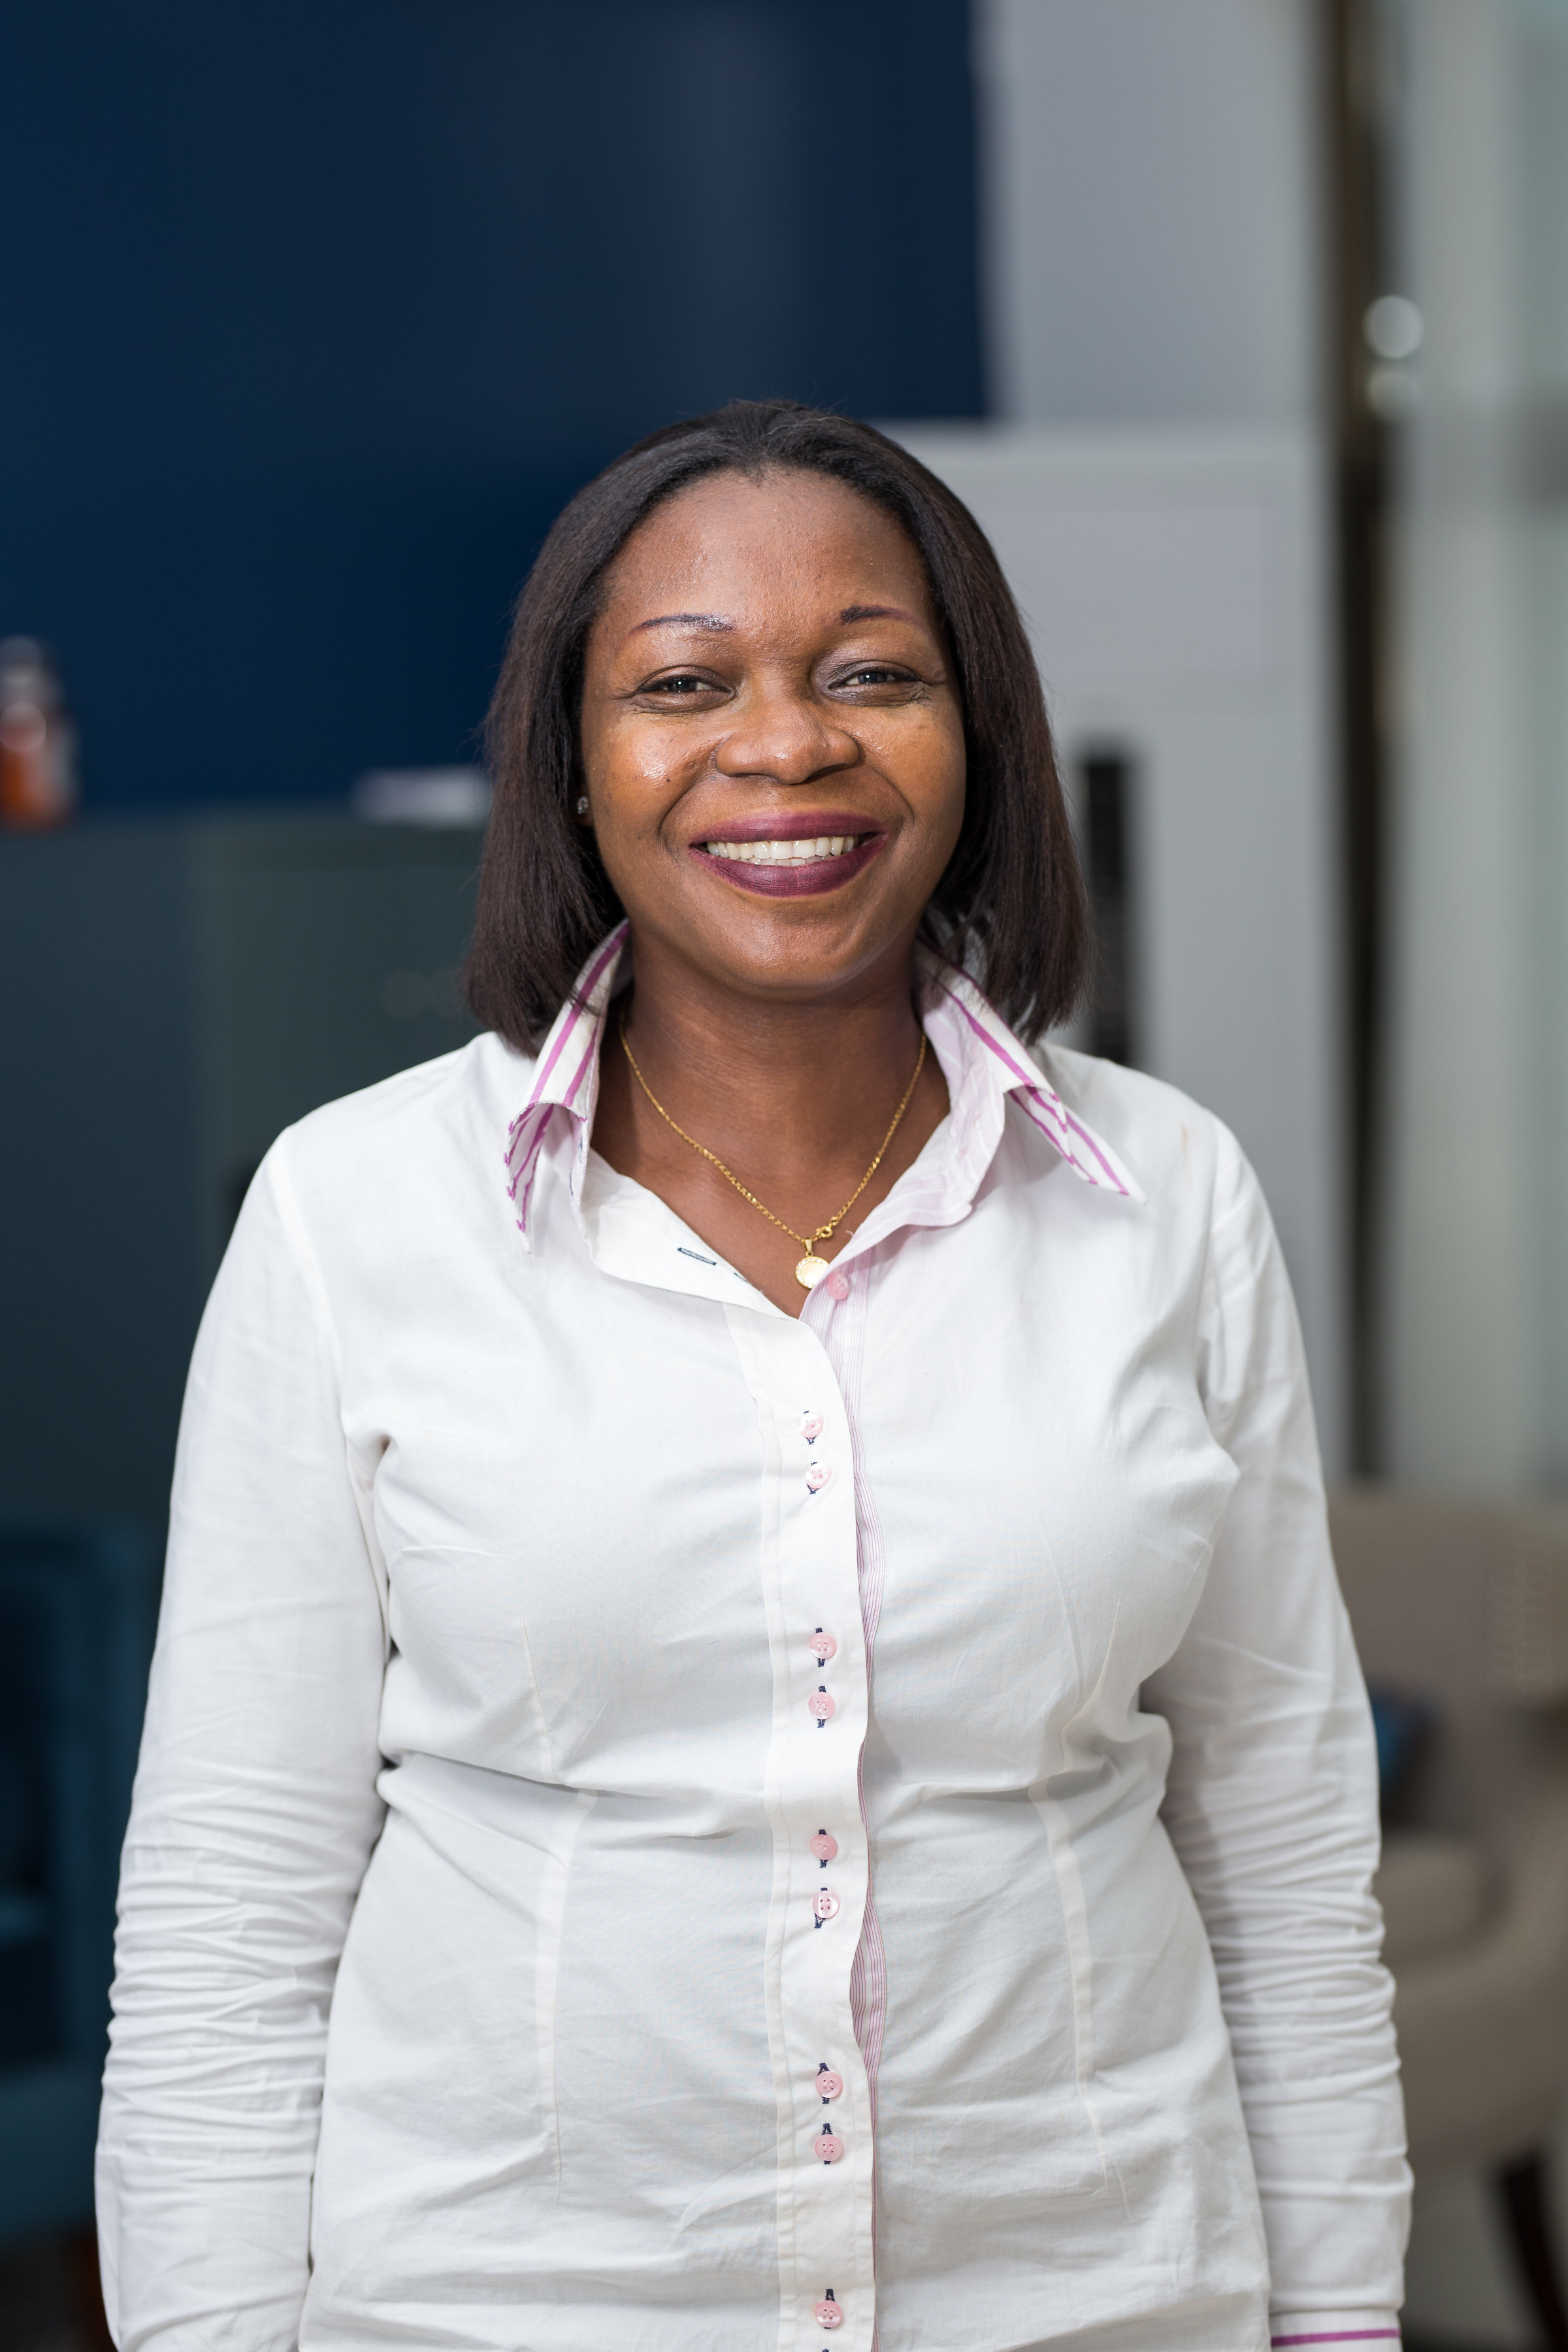 Akpene Kwashie - Administrative Assistant